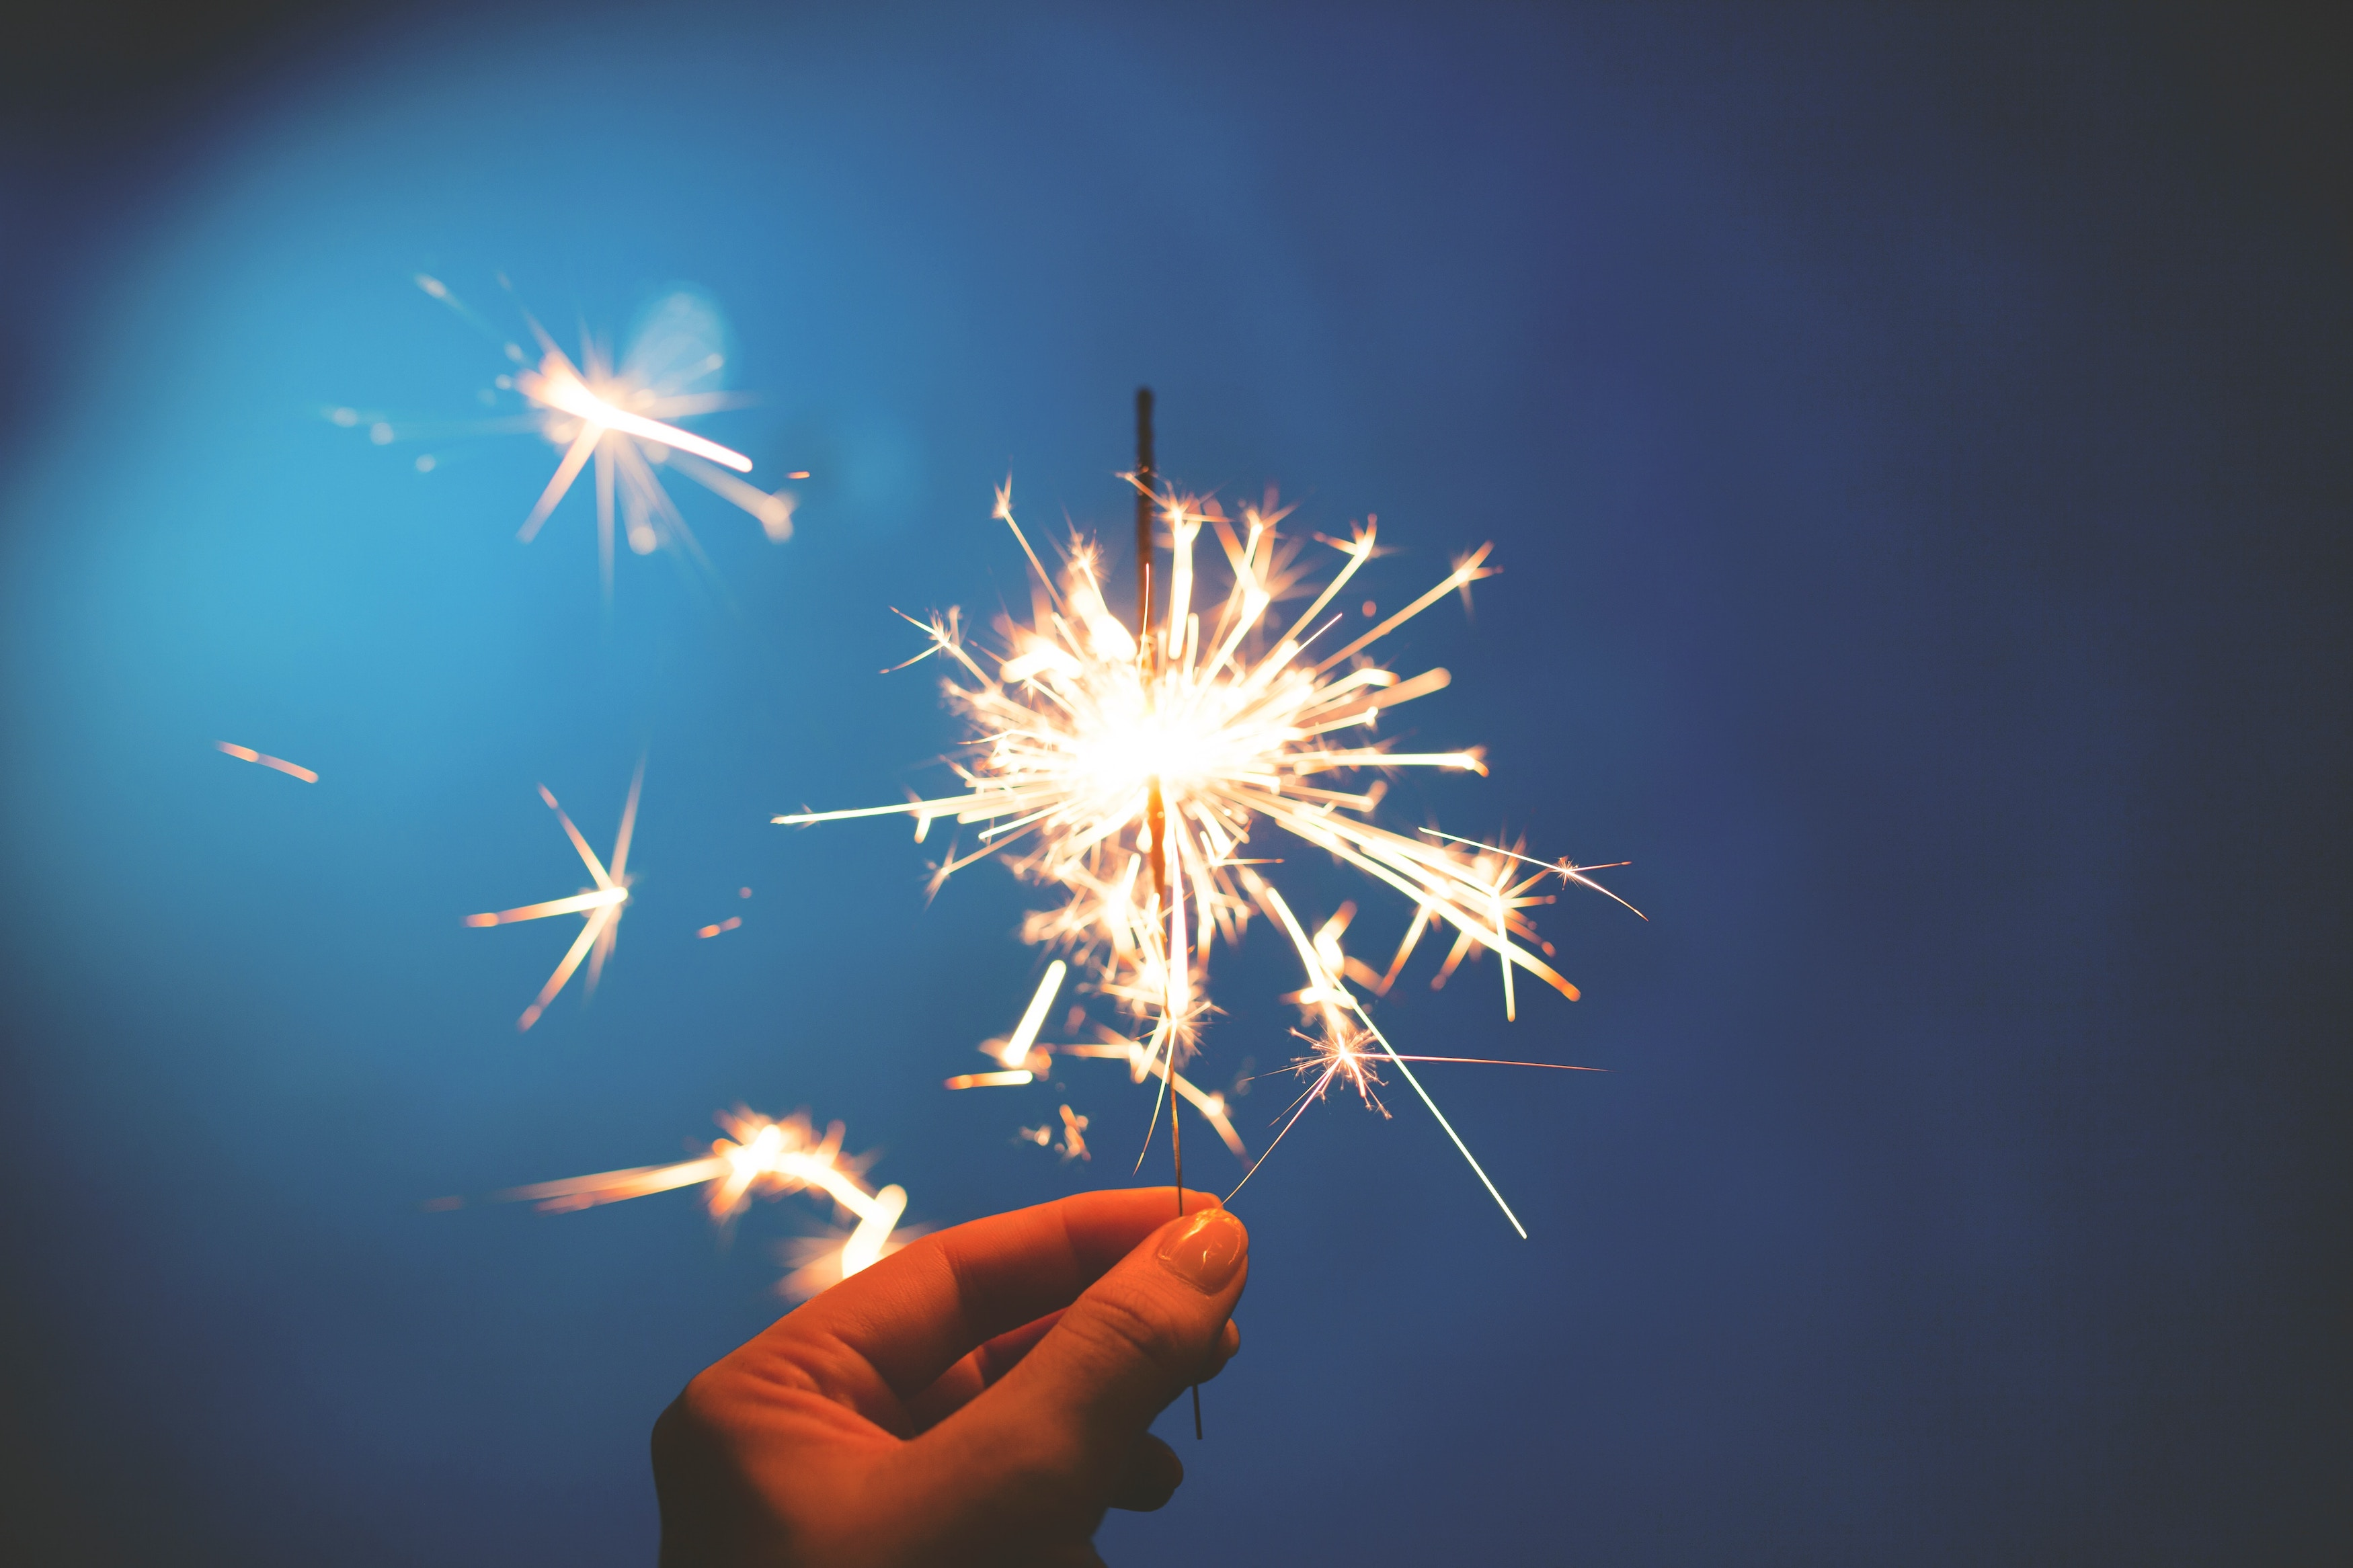 Sparklers are a fun way to experience Bonfire Night without the loud bangs but make sure to handle and dispose of them correctly!